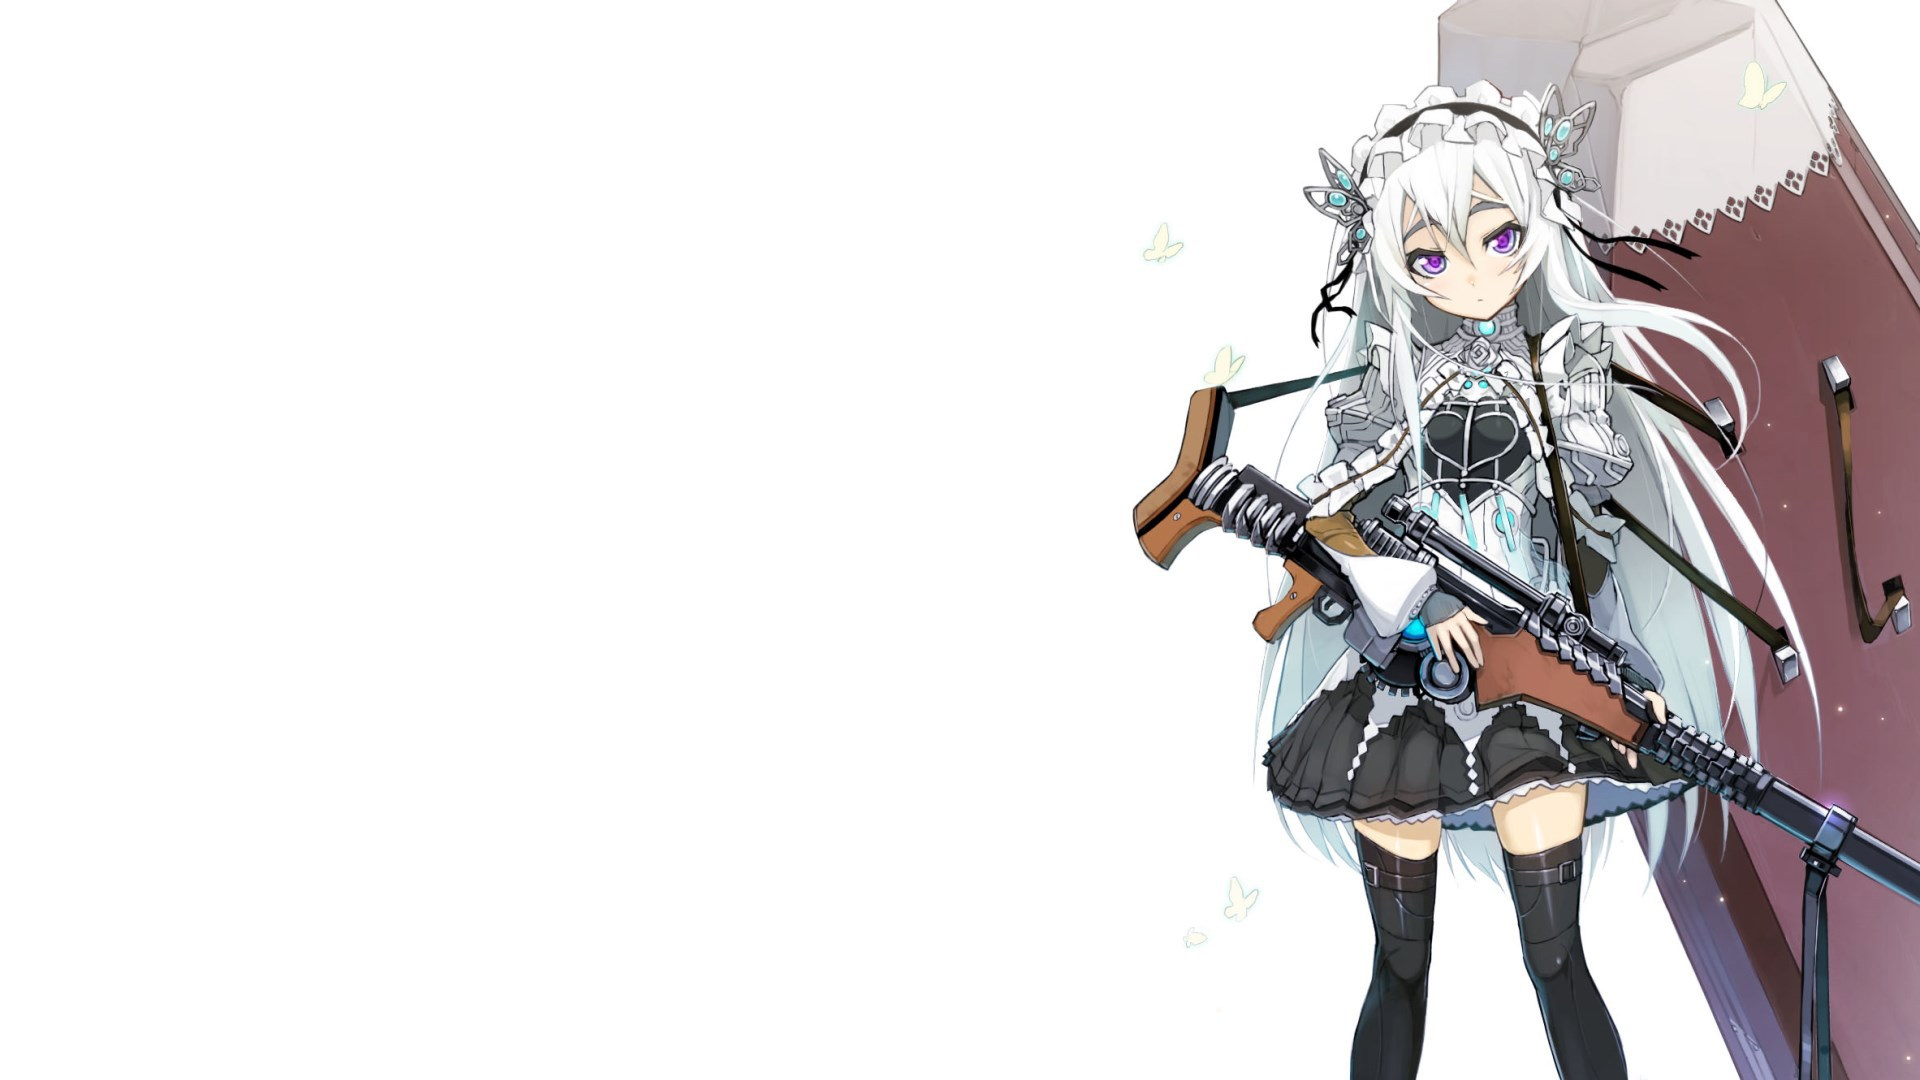 chaika-the-coffin-princess-theme-background-images-kB-Fleetwood-Blare-wallpaper-wpc5803339